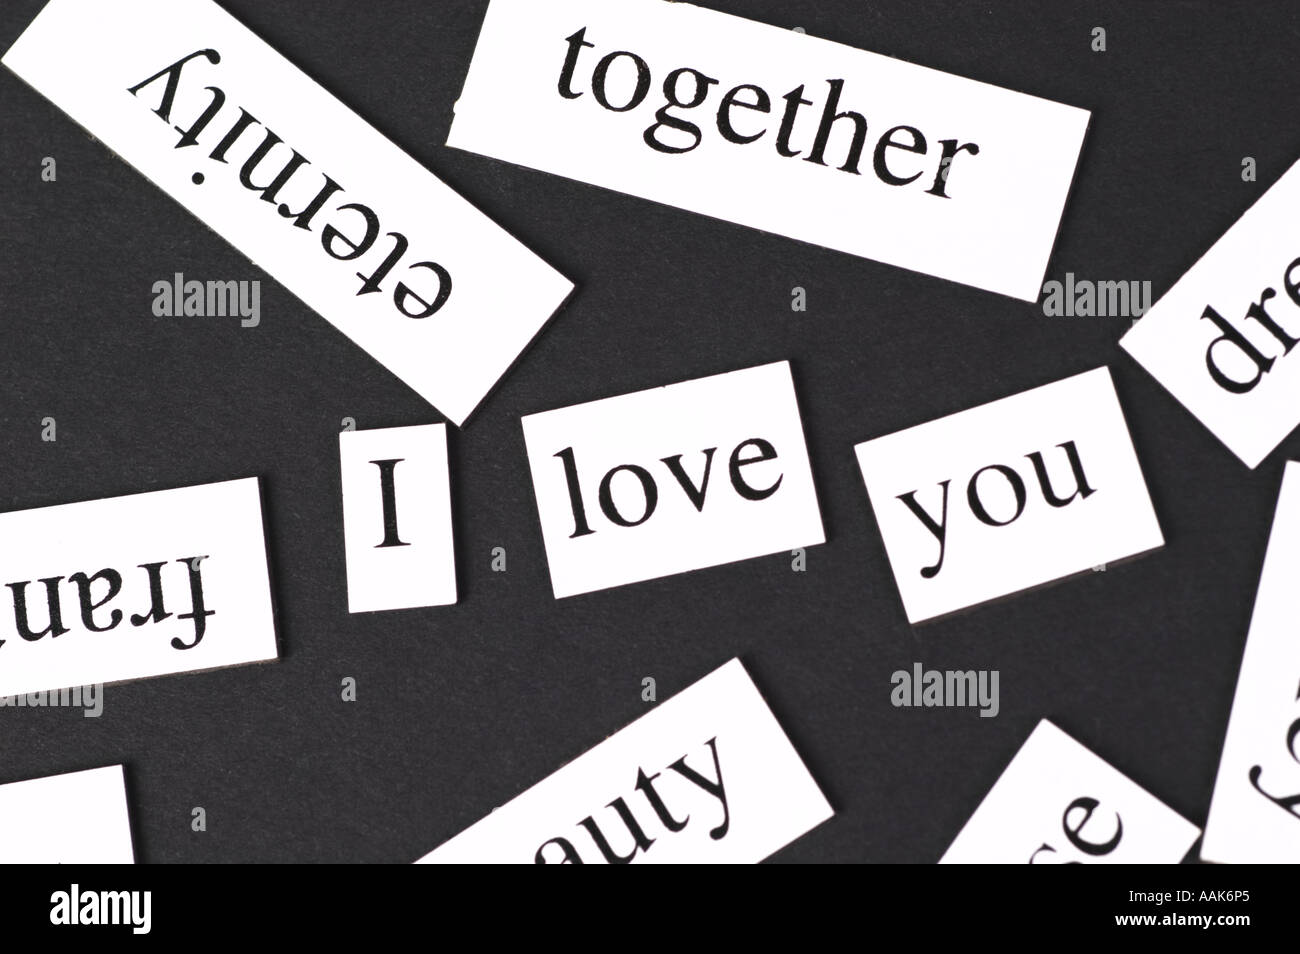 Magnetic Fridge Words Jumbled Up But With The Words I Love You In The Middle